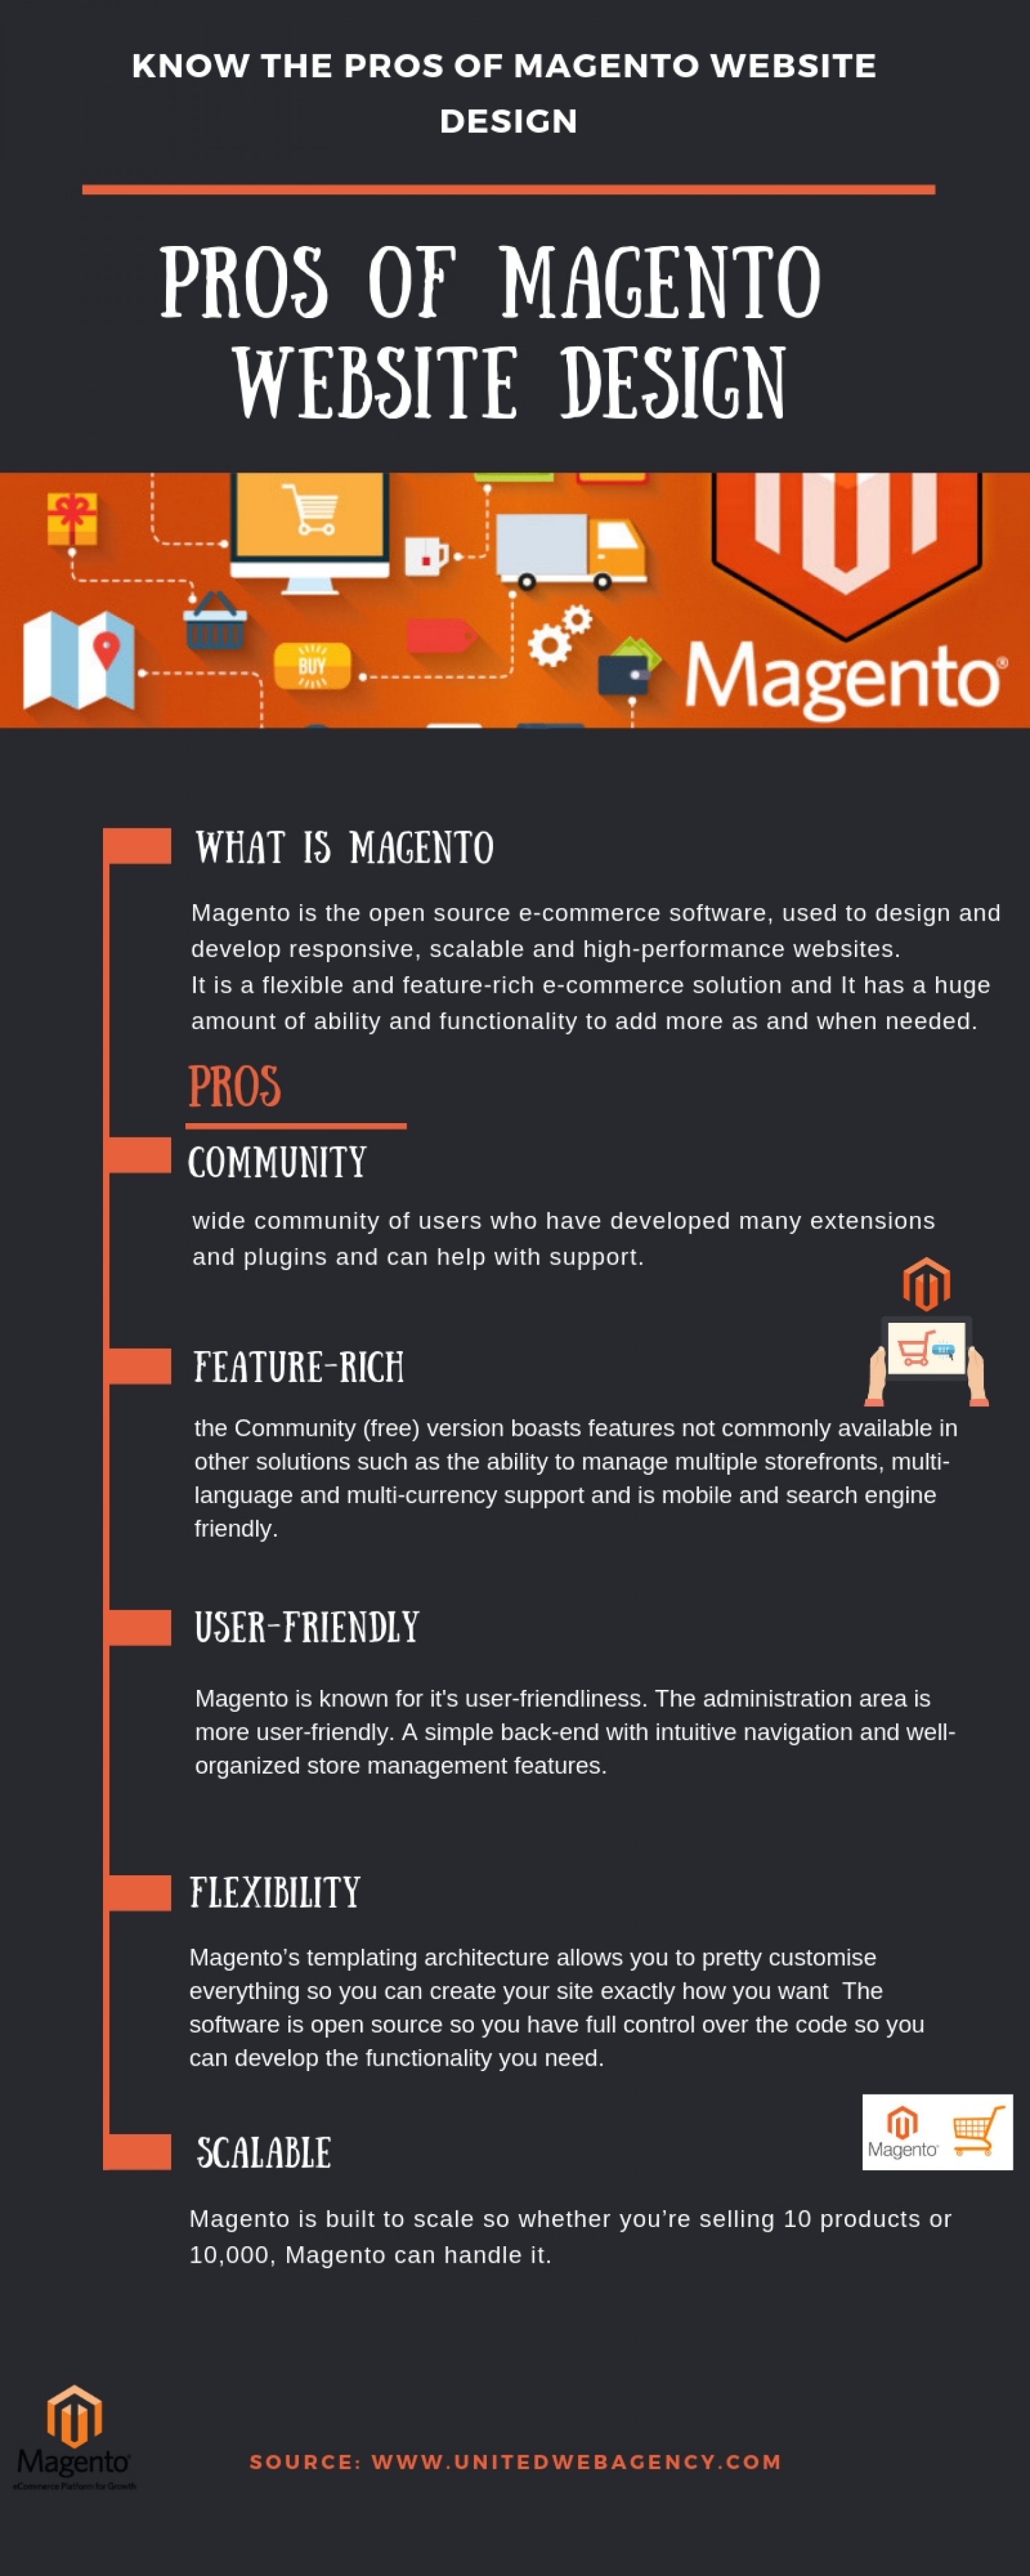 Know the Pros of Magento Website Design Infographic